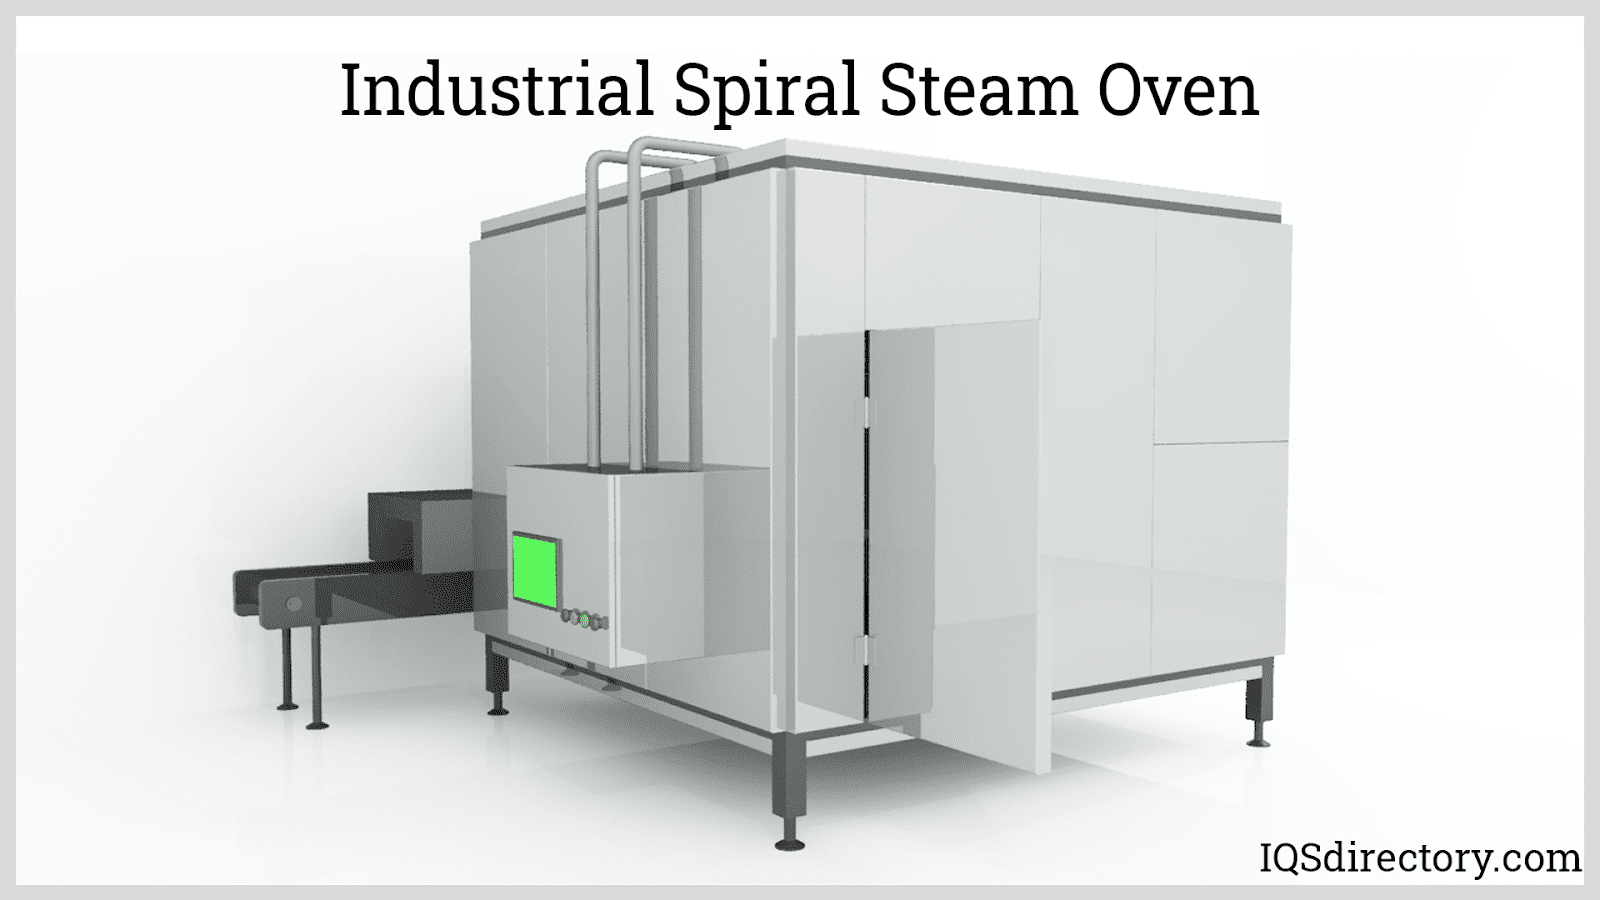 Industrial Spiral Steam Oven